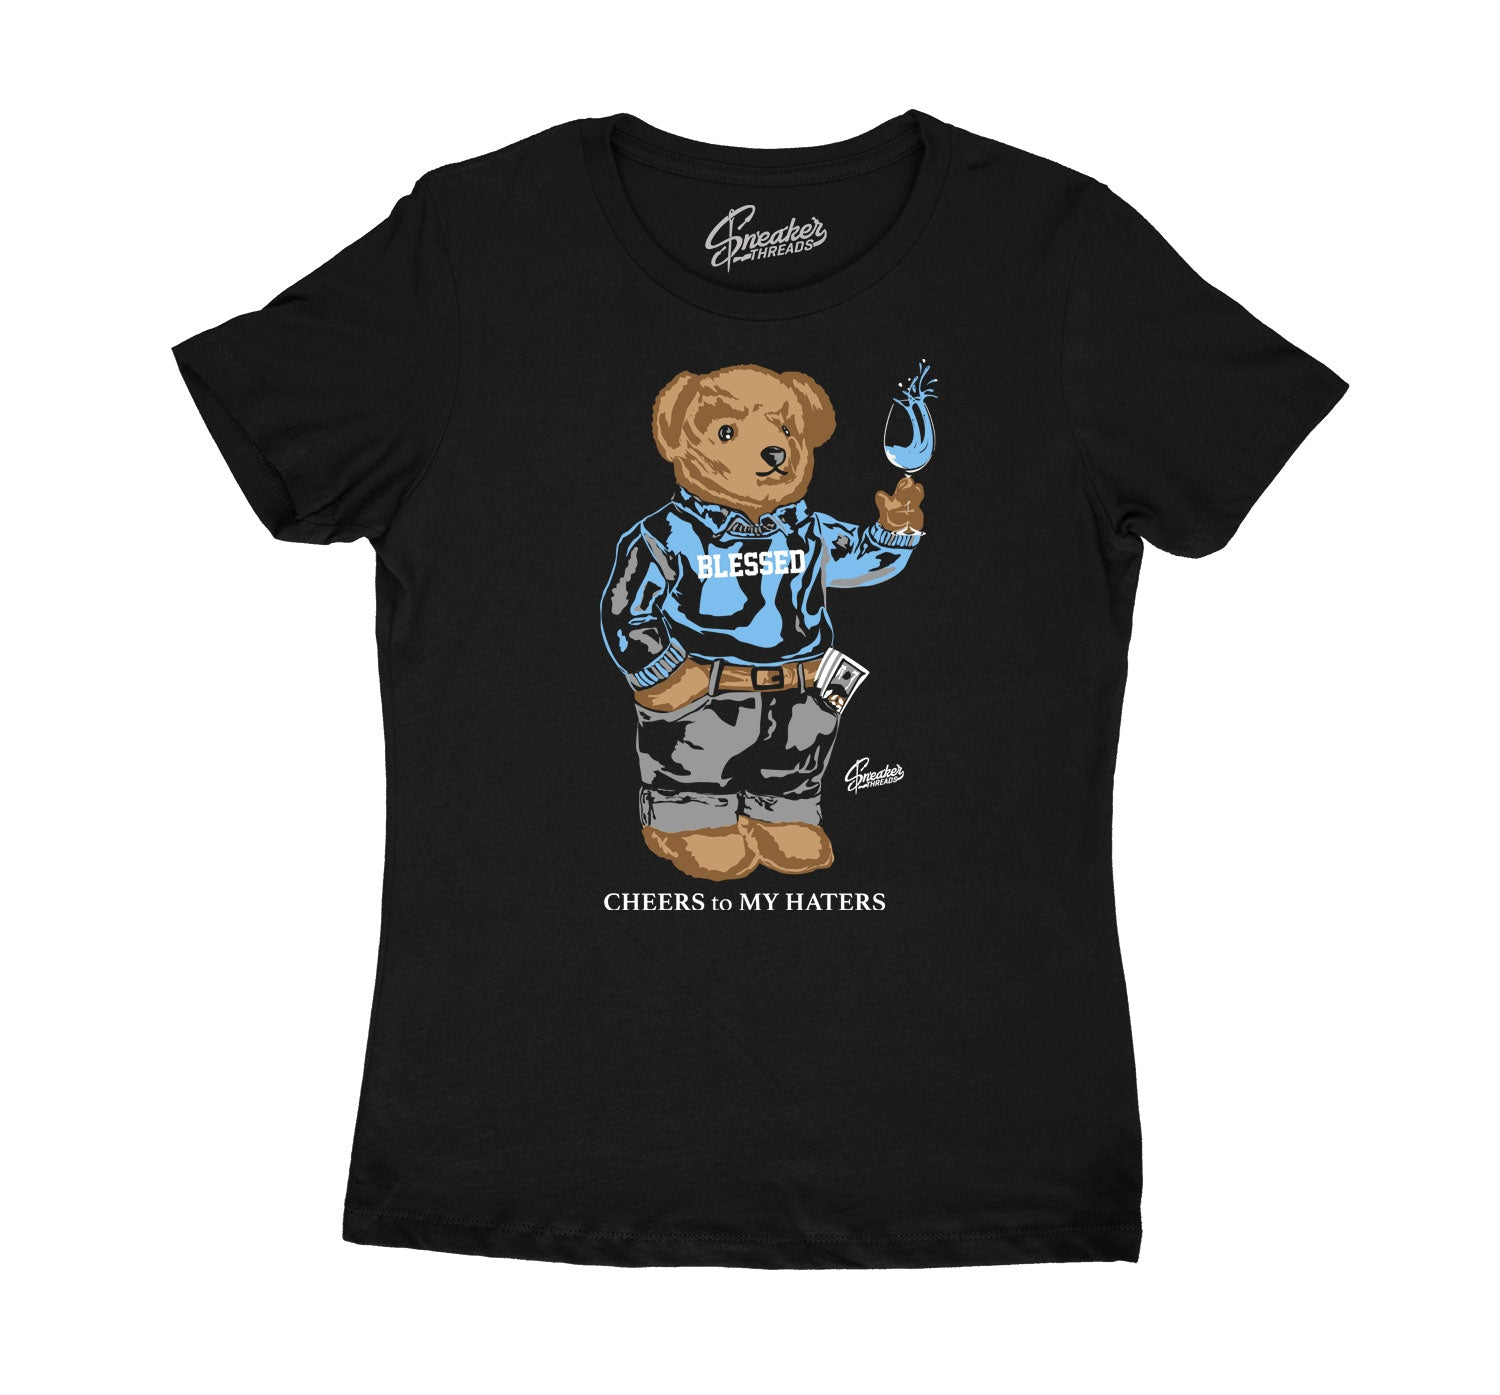 Womens University Blue 1 Shirt - Cheers Bear - Black